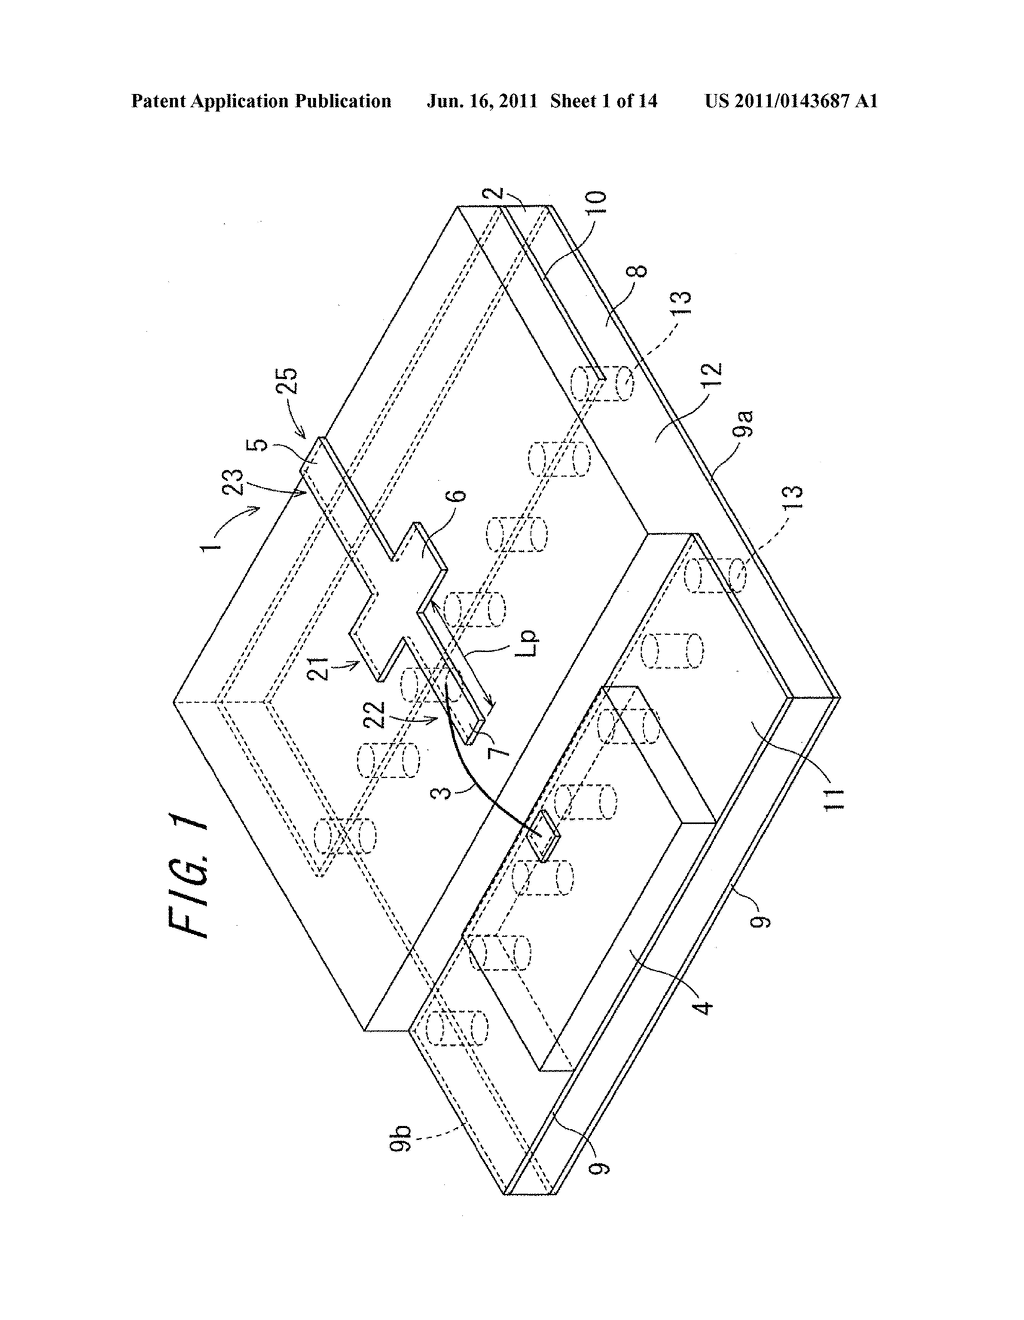 Matching Circuit Wiring Board And Transmitter Receiver Transceiver Radar Apparatus That Have The Diagram Schematic Image